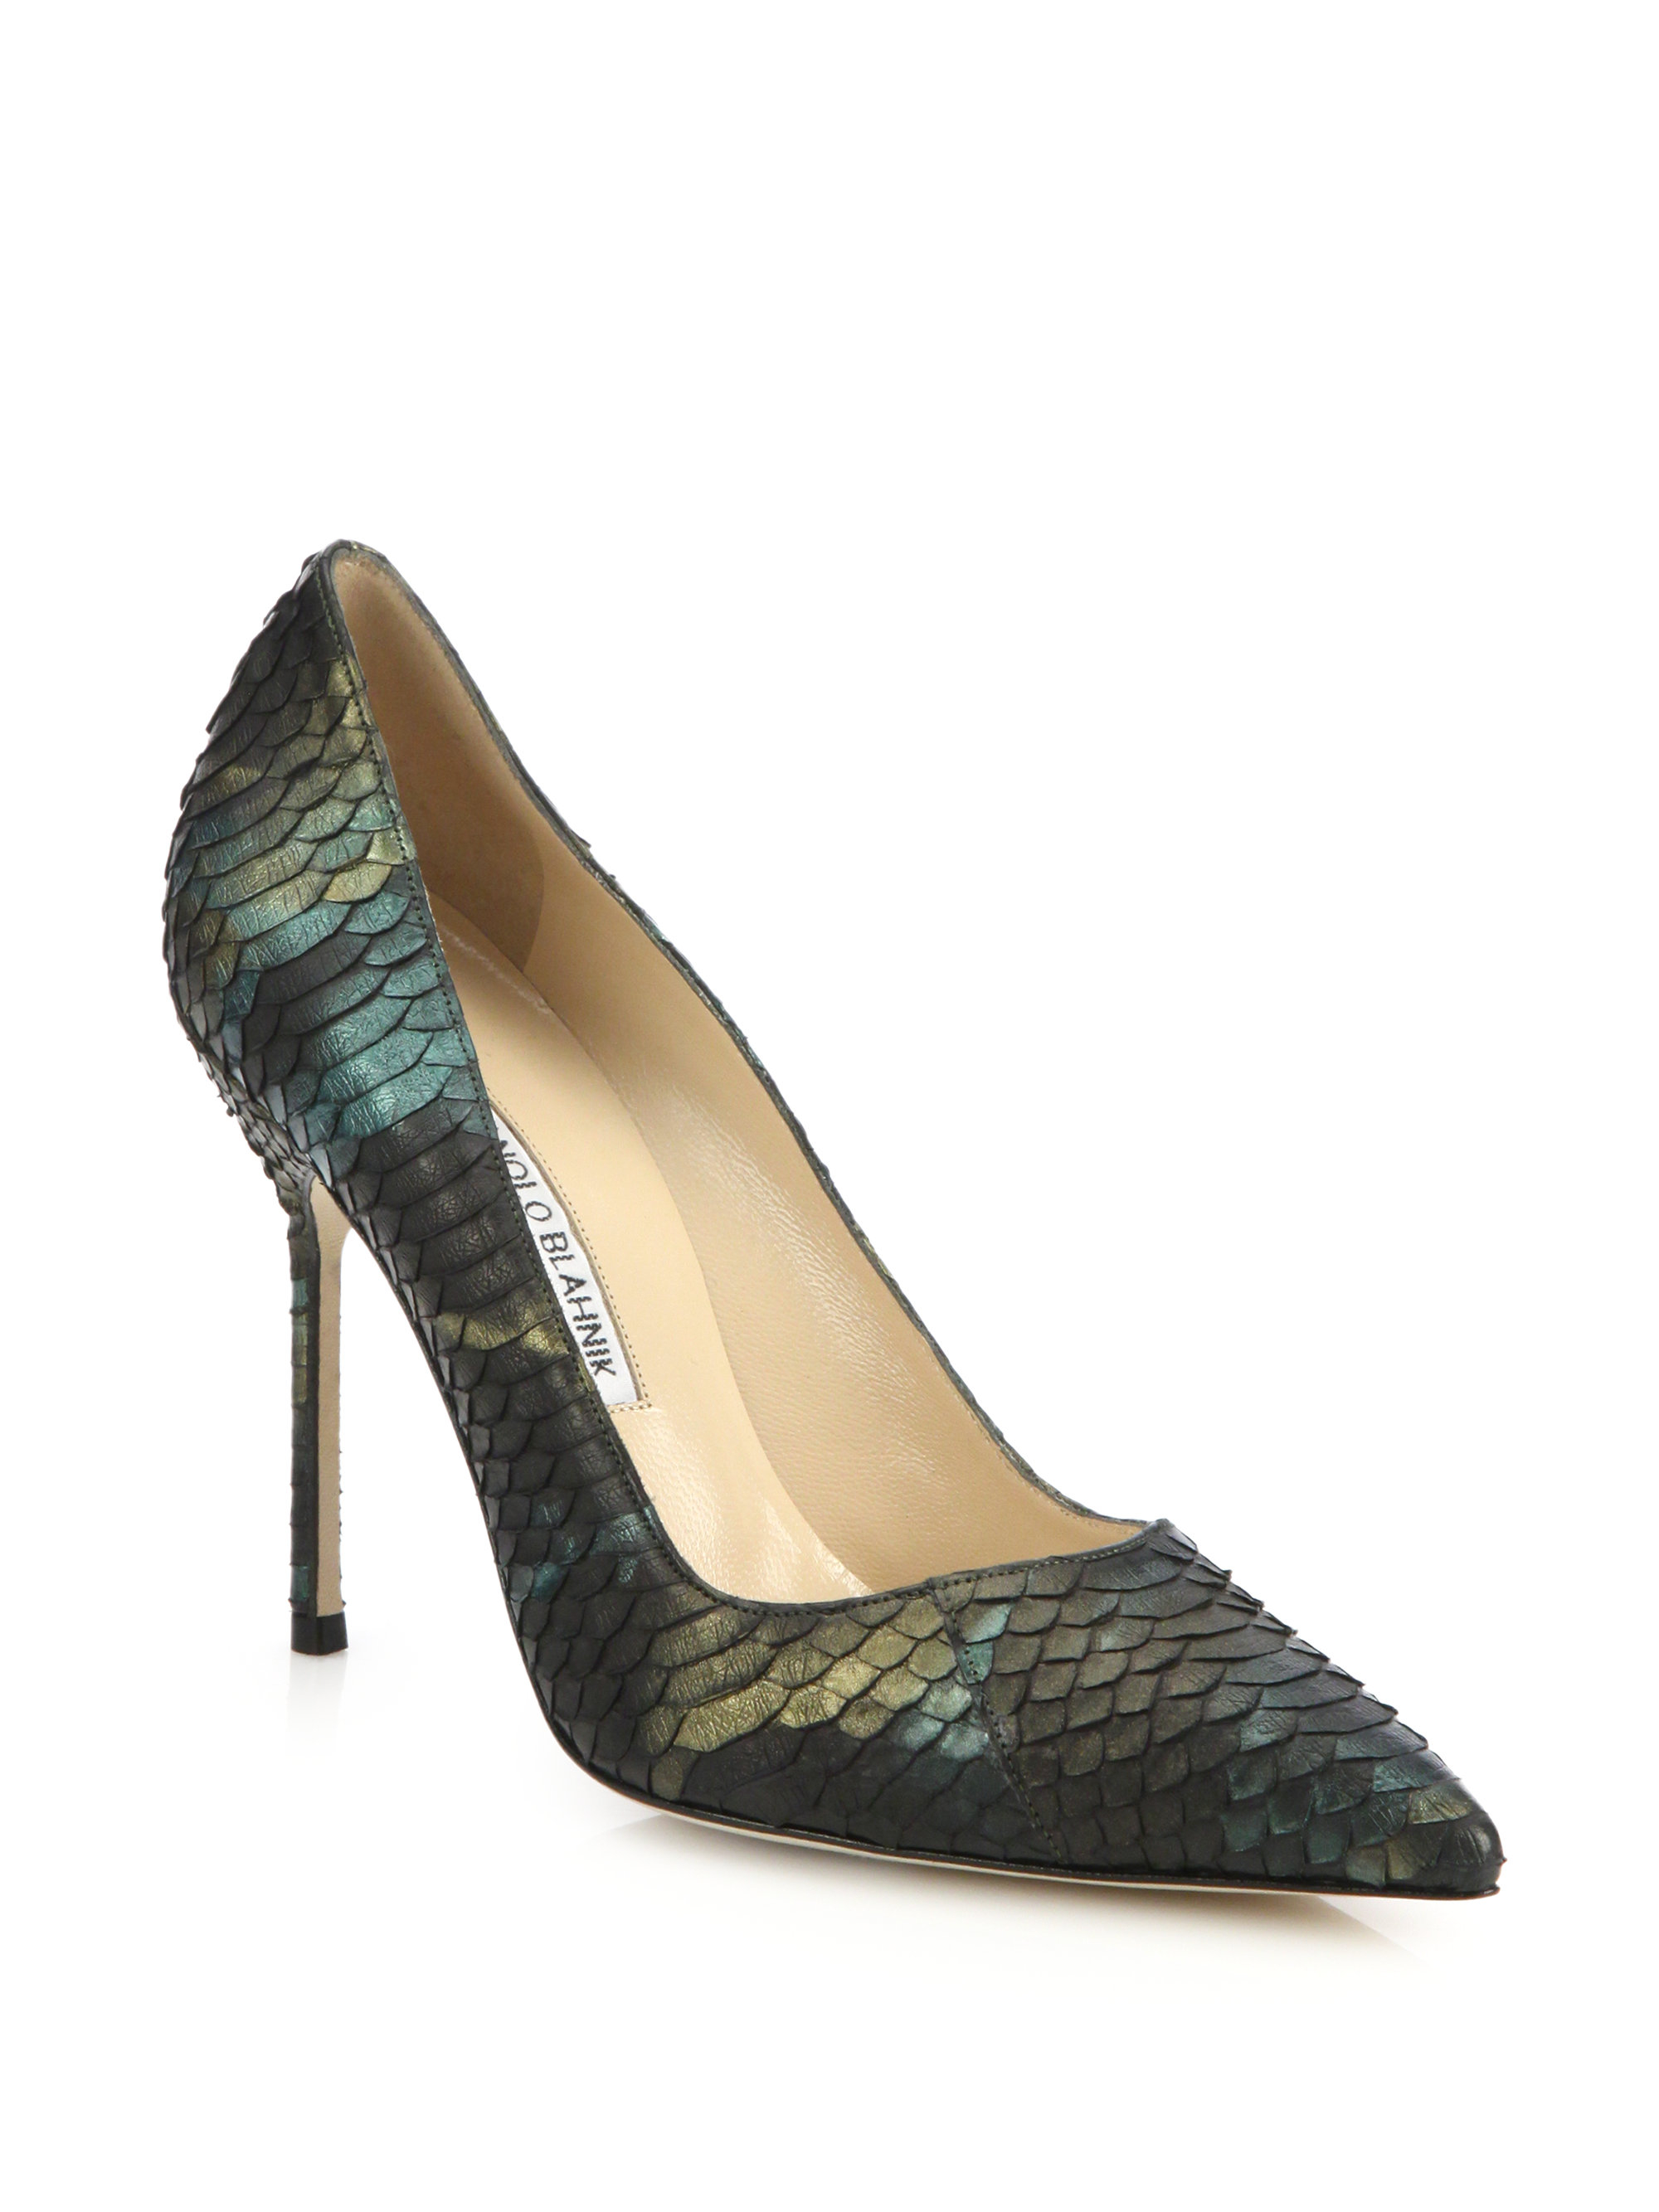 Lyst Manolo Blahnik Bb 105 Iridescent Snakeskin Pumps In